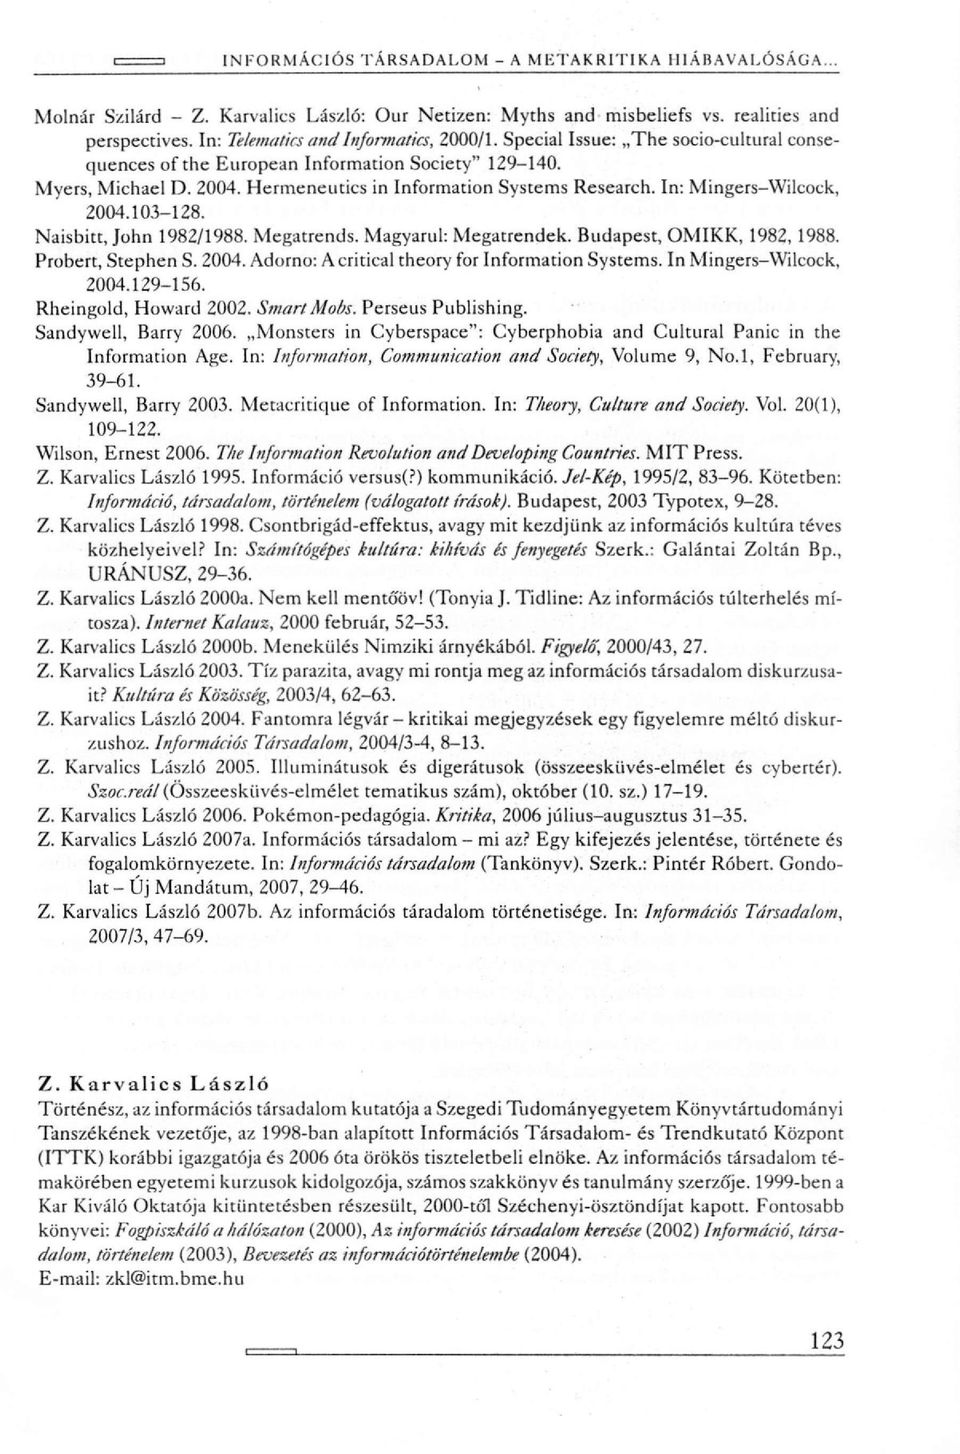 Naisbitt, John 1982/1988. Megatrends. Magyarul: Megatrendek. Budapest, OMIKK, 1982, 1988. Probert, Stephen S. 2004. Adorno: A critical theory for Information Systems. In Mingeis-Wilcock, 2004.129-156.